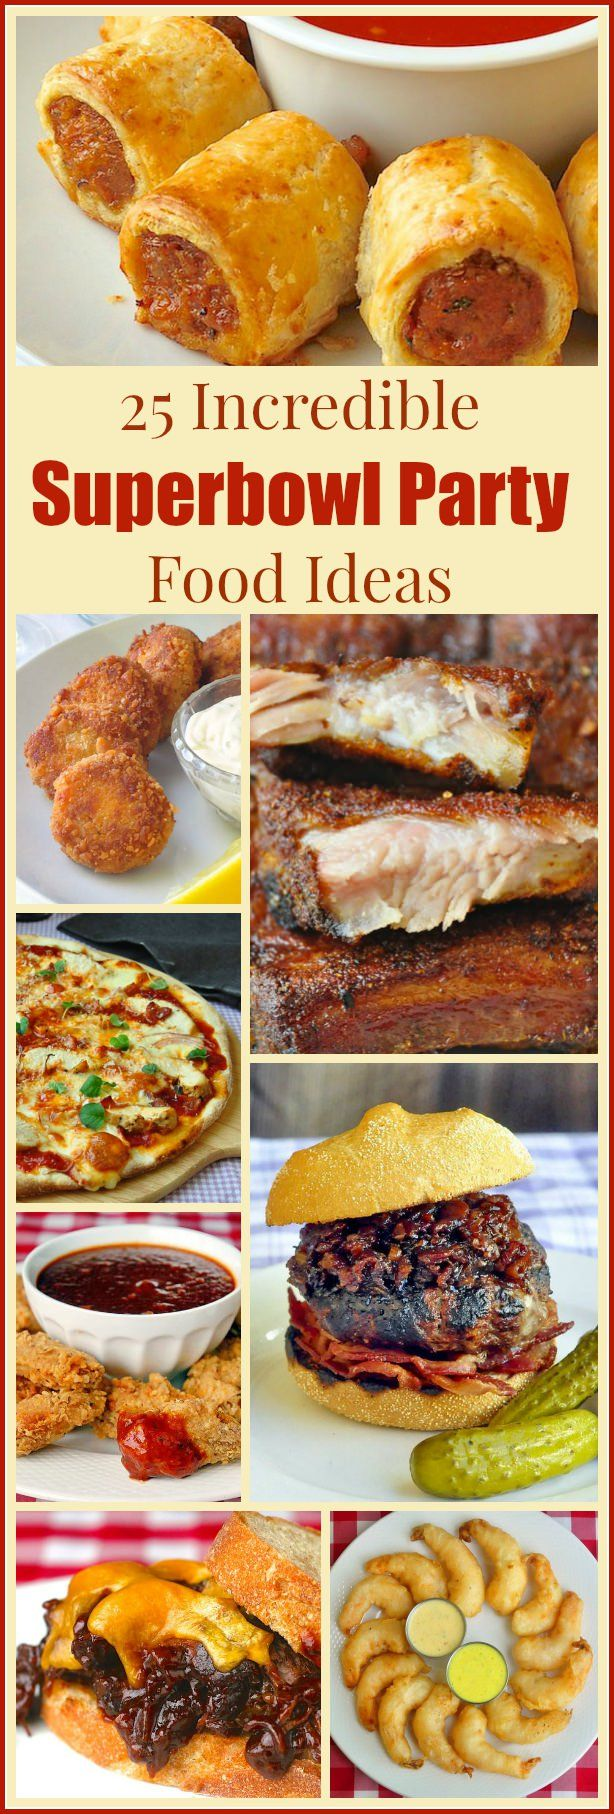 Rock Recipes Best Super Bowl Party Food Ideas - 35 of our best recipe ideas to make your Super Bowl Party a sure winner no matter who you're rooting for.